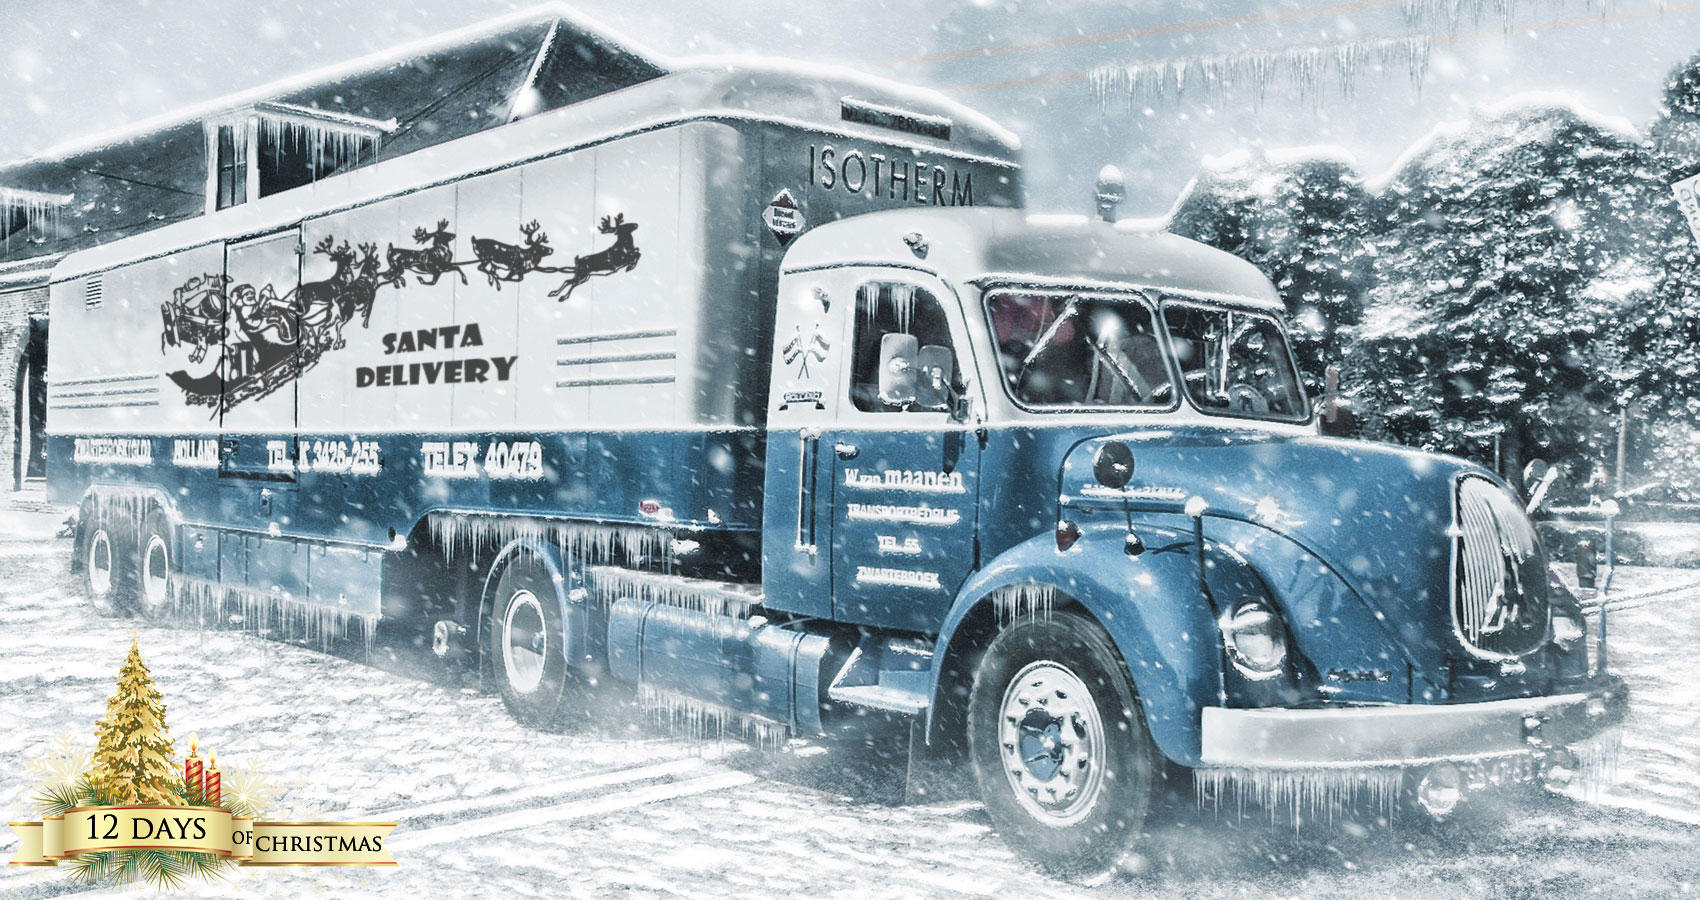 The Christmas Convoy by Roger Turner at Spillwords.com